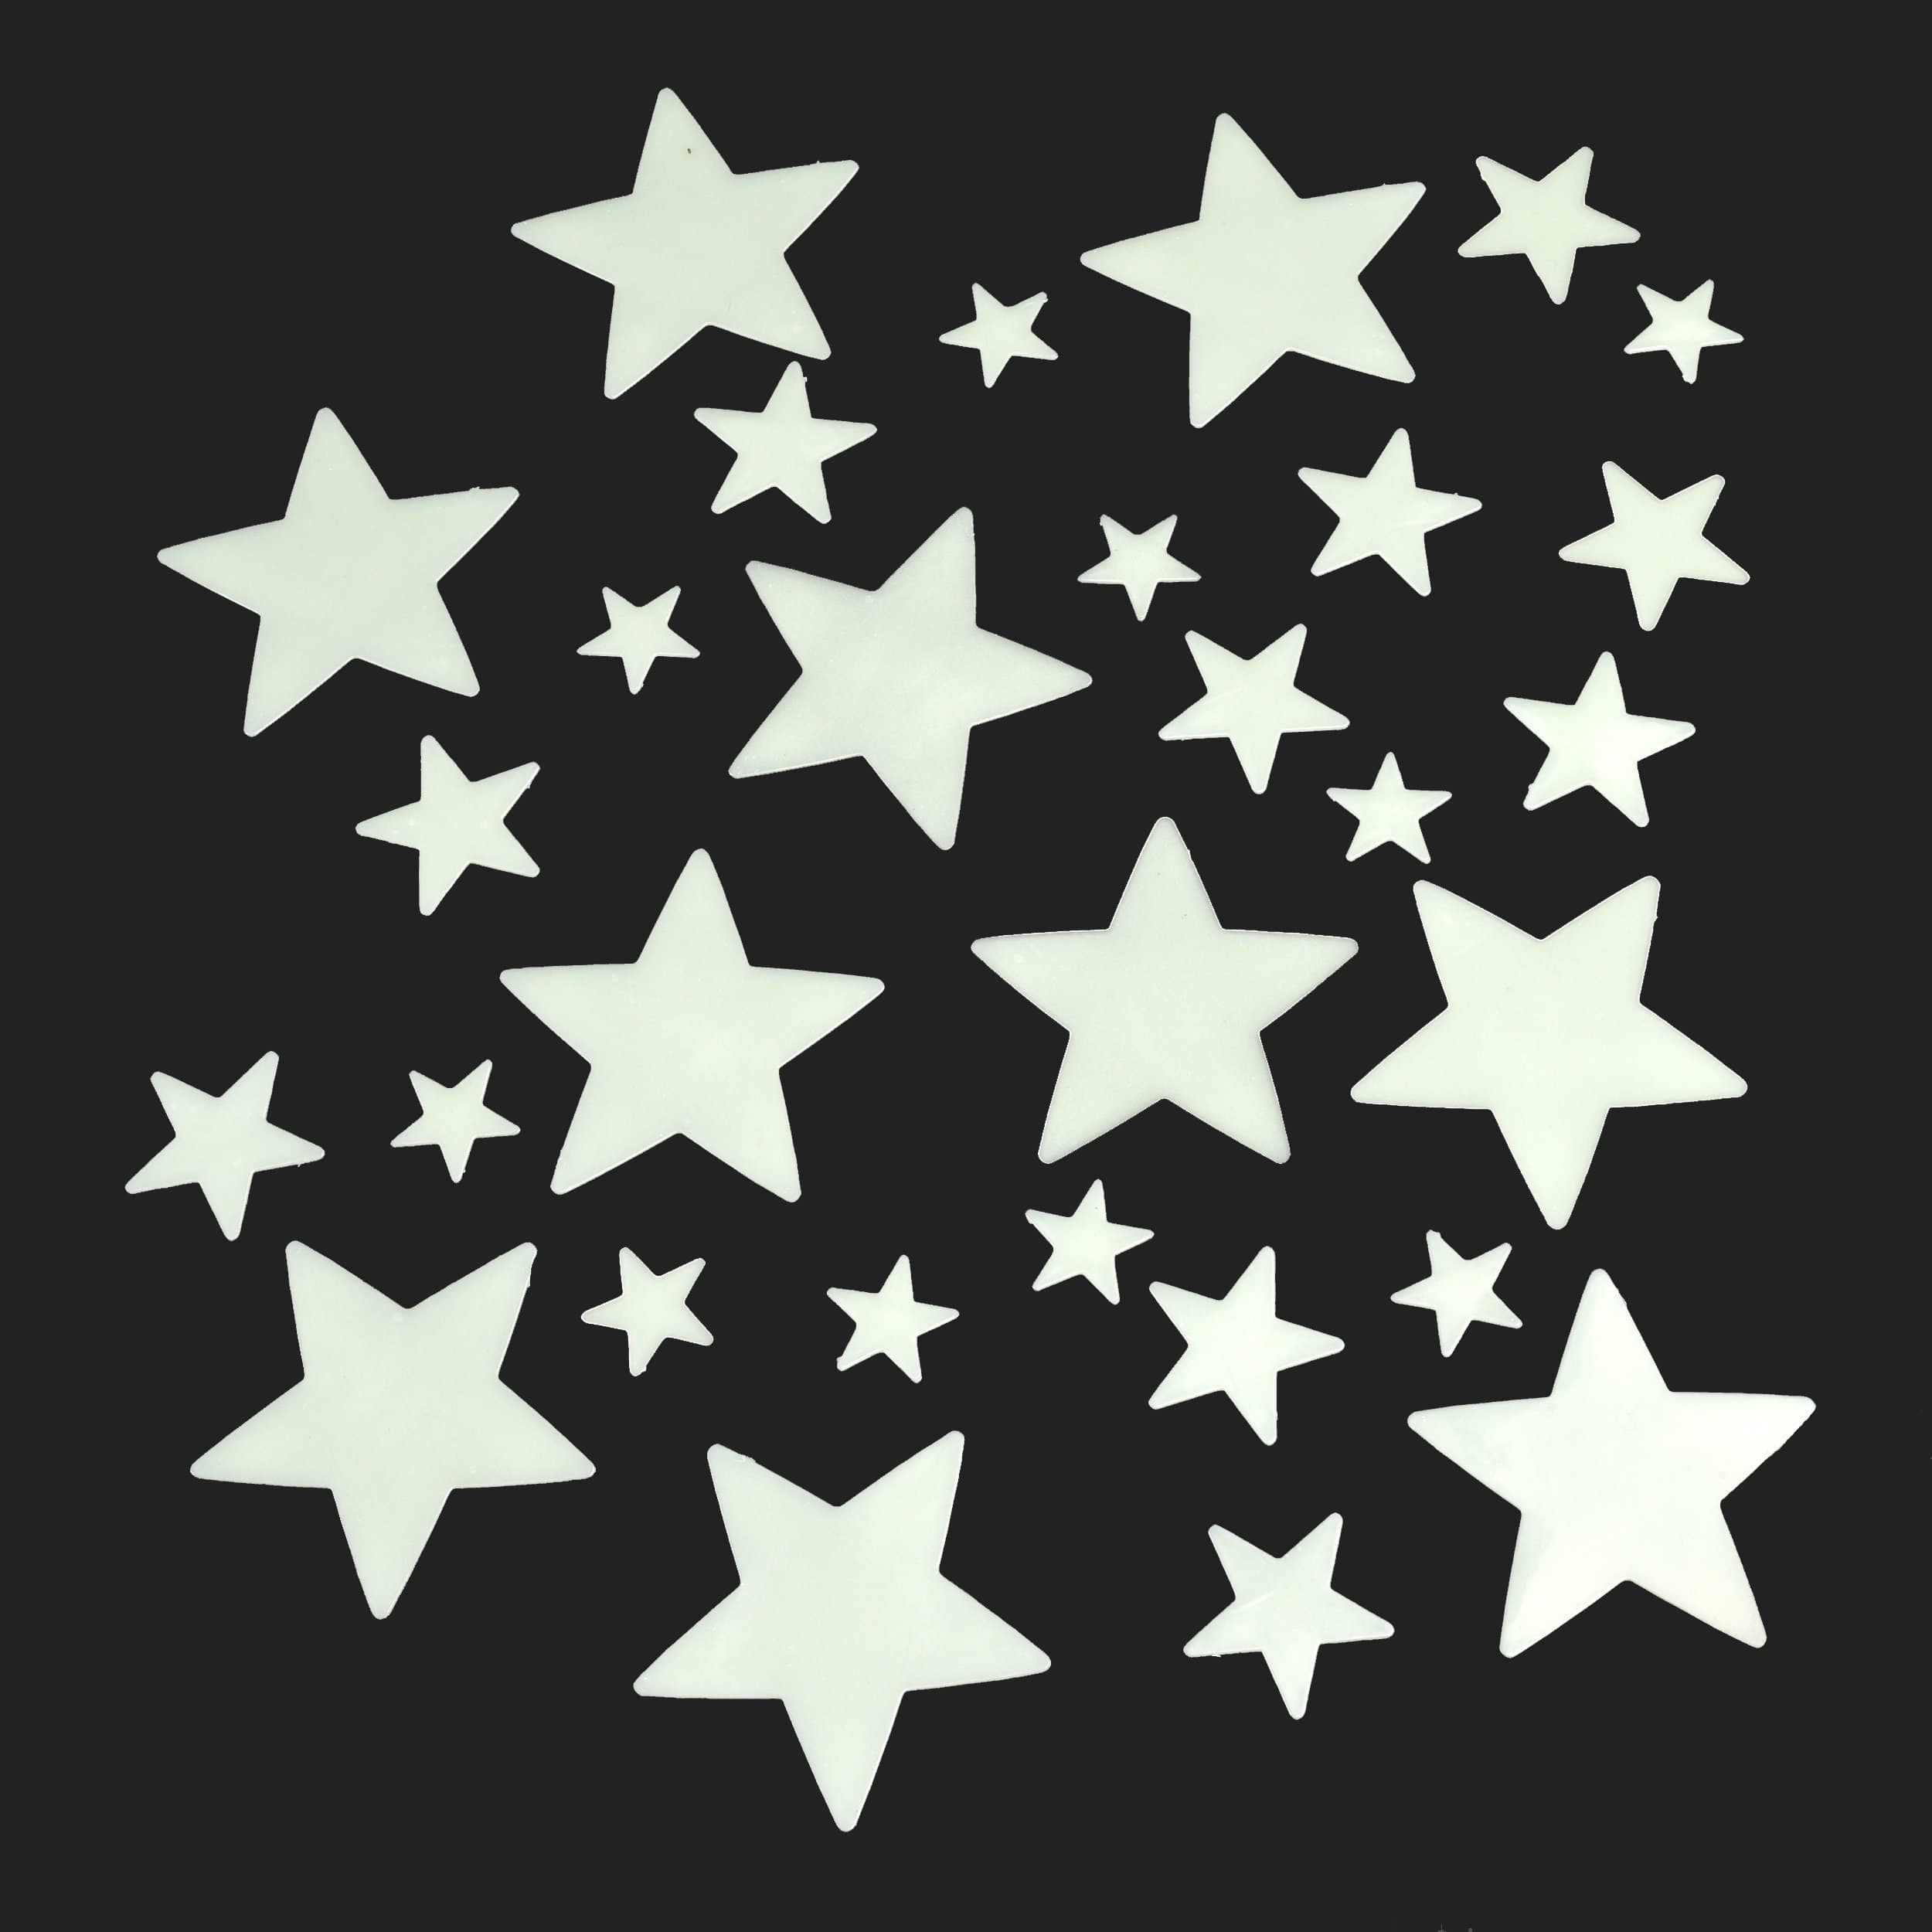 30 GLOW IN THE DARK STARS